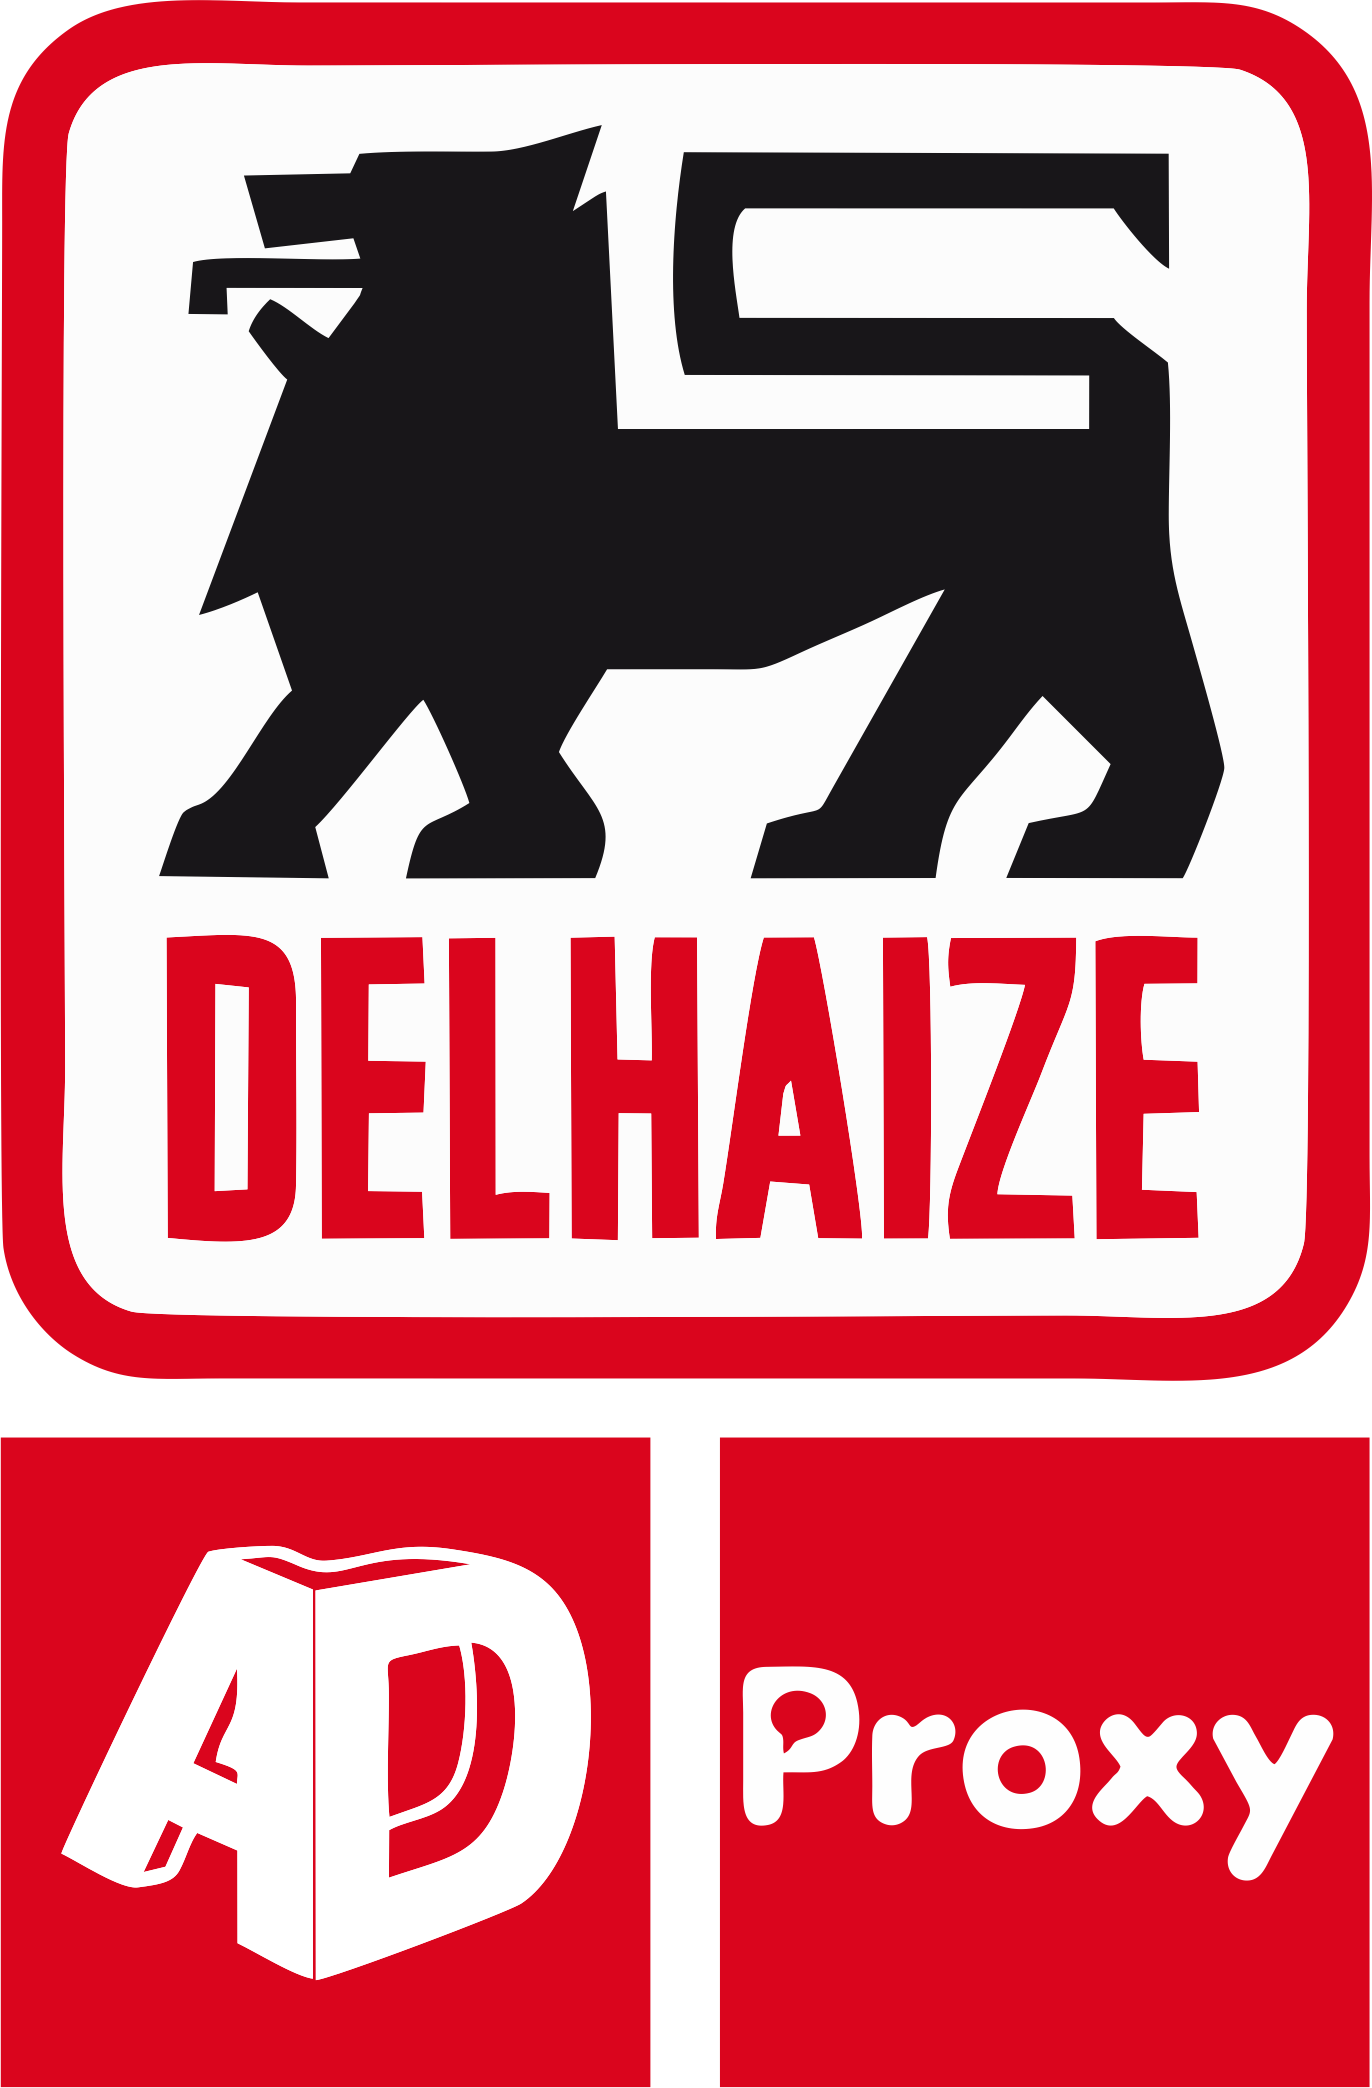 Point de retrait Supermarché Proxy/AD Delhaize